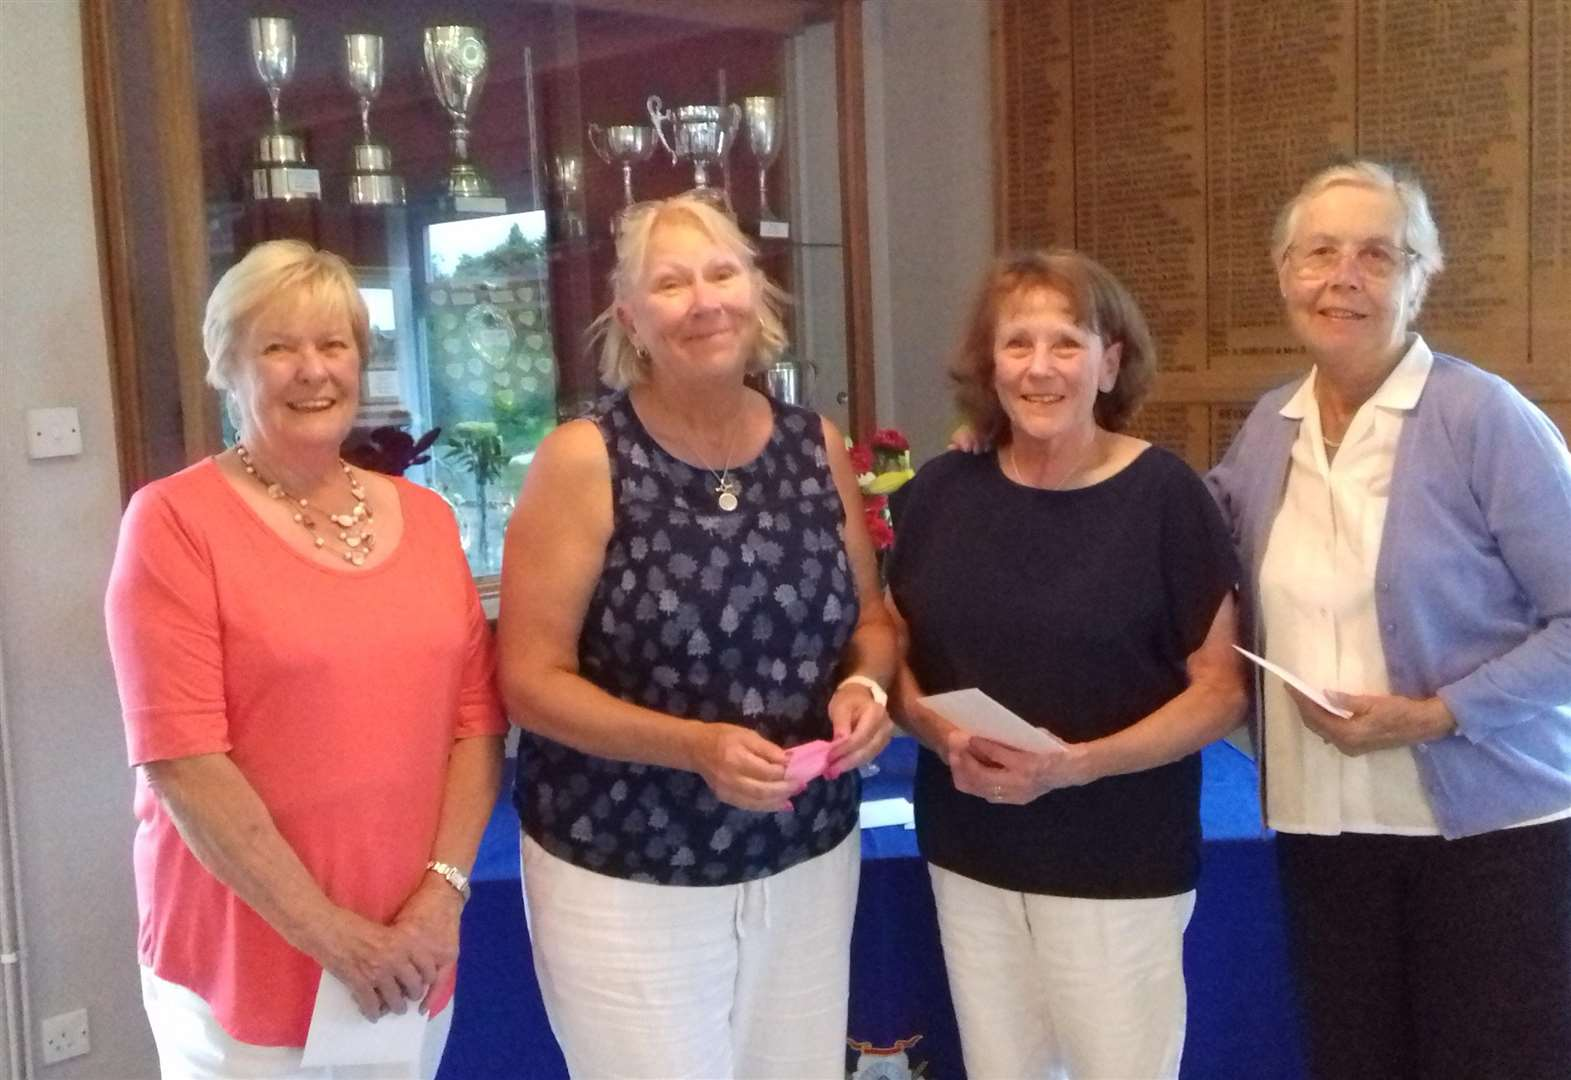 March Golf Club Ladies show Can-do attitude in cup